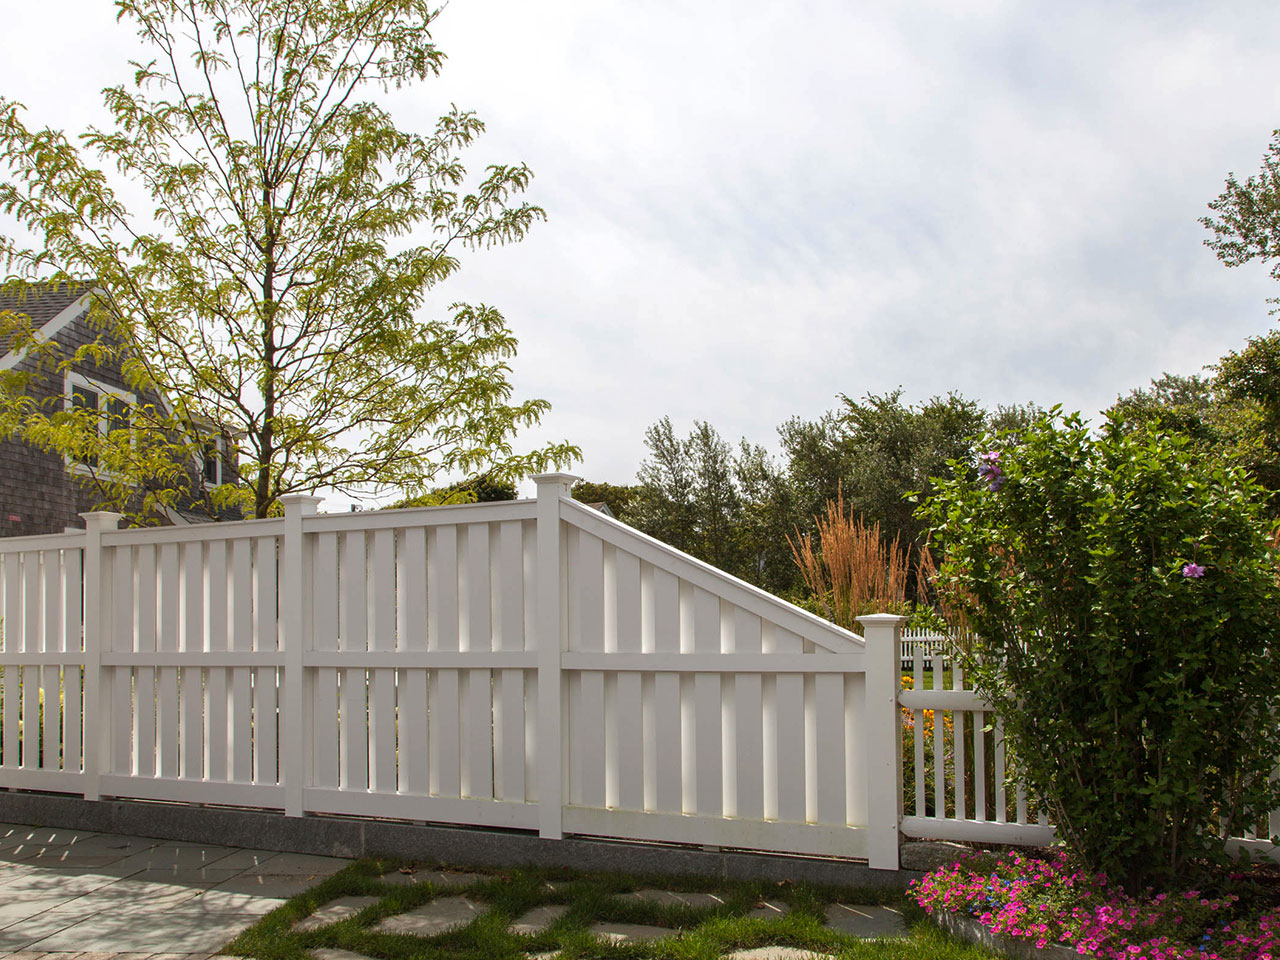 Semi Private Fence Cape Cod Fence Company